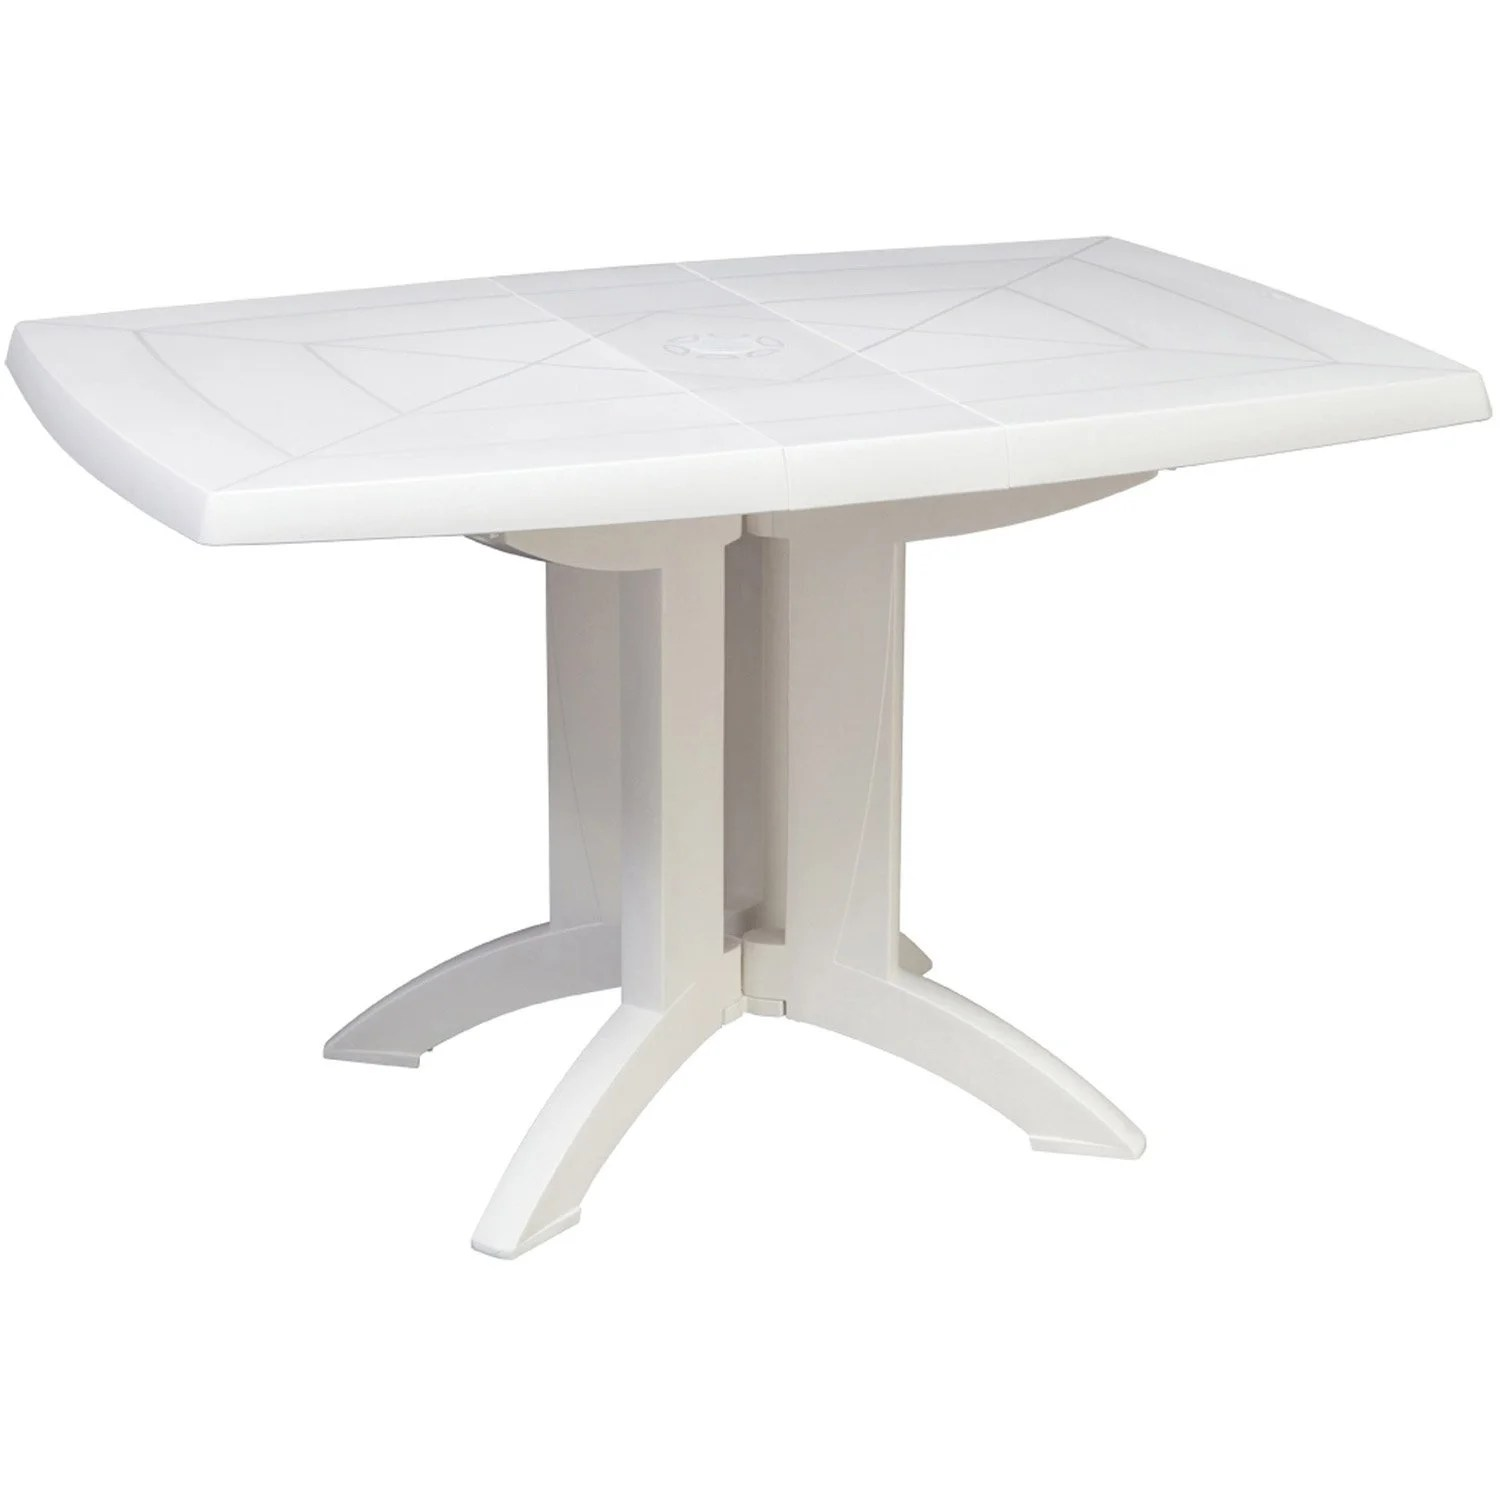 Table Jardin Verte Plastique Table De Jardin Grosfillex Véga Rectangulaire Blanc 4